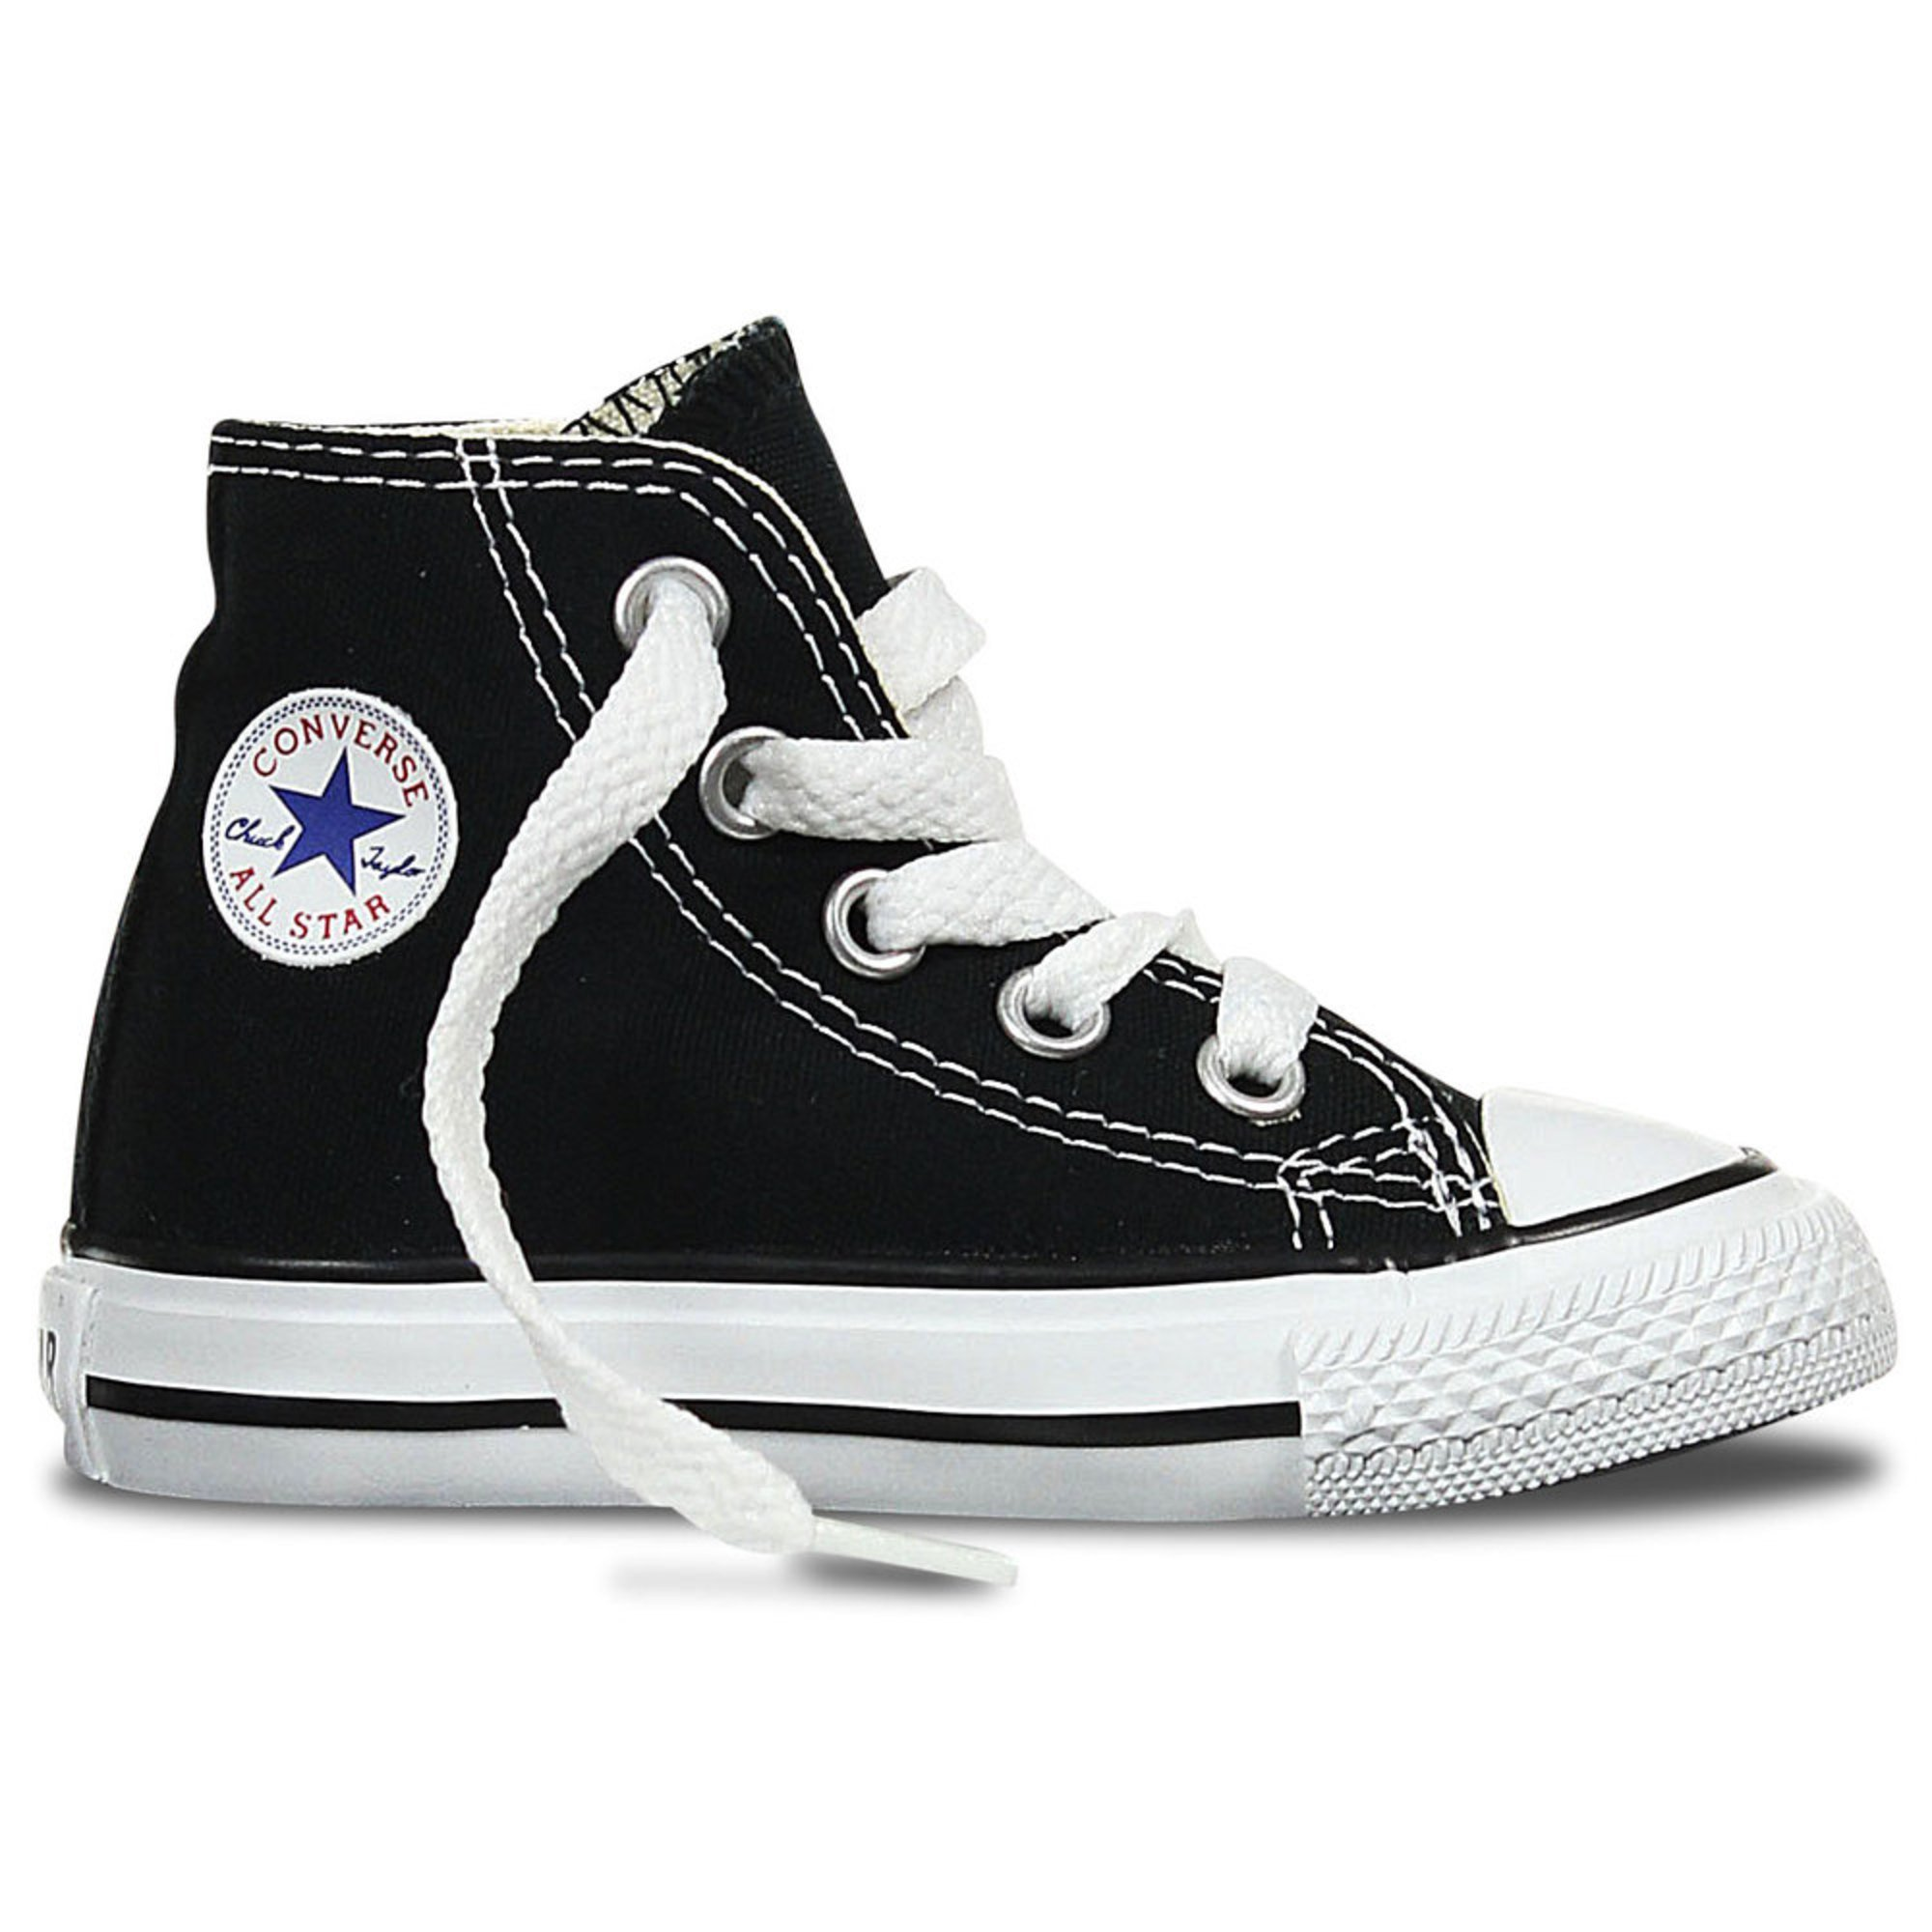 d87caa1cdaf5 Converse. Converse Boys Chuck Taylor All Star Hi Top Basketball Shoe ...